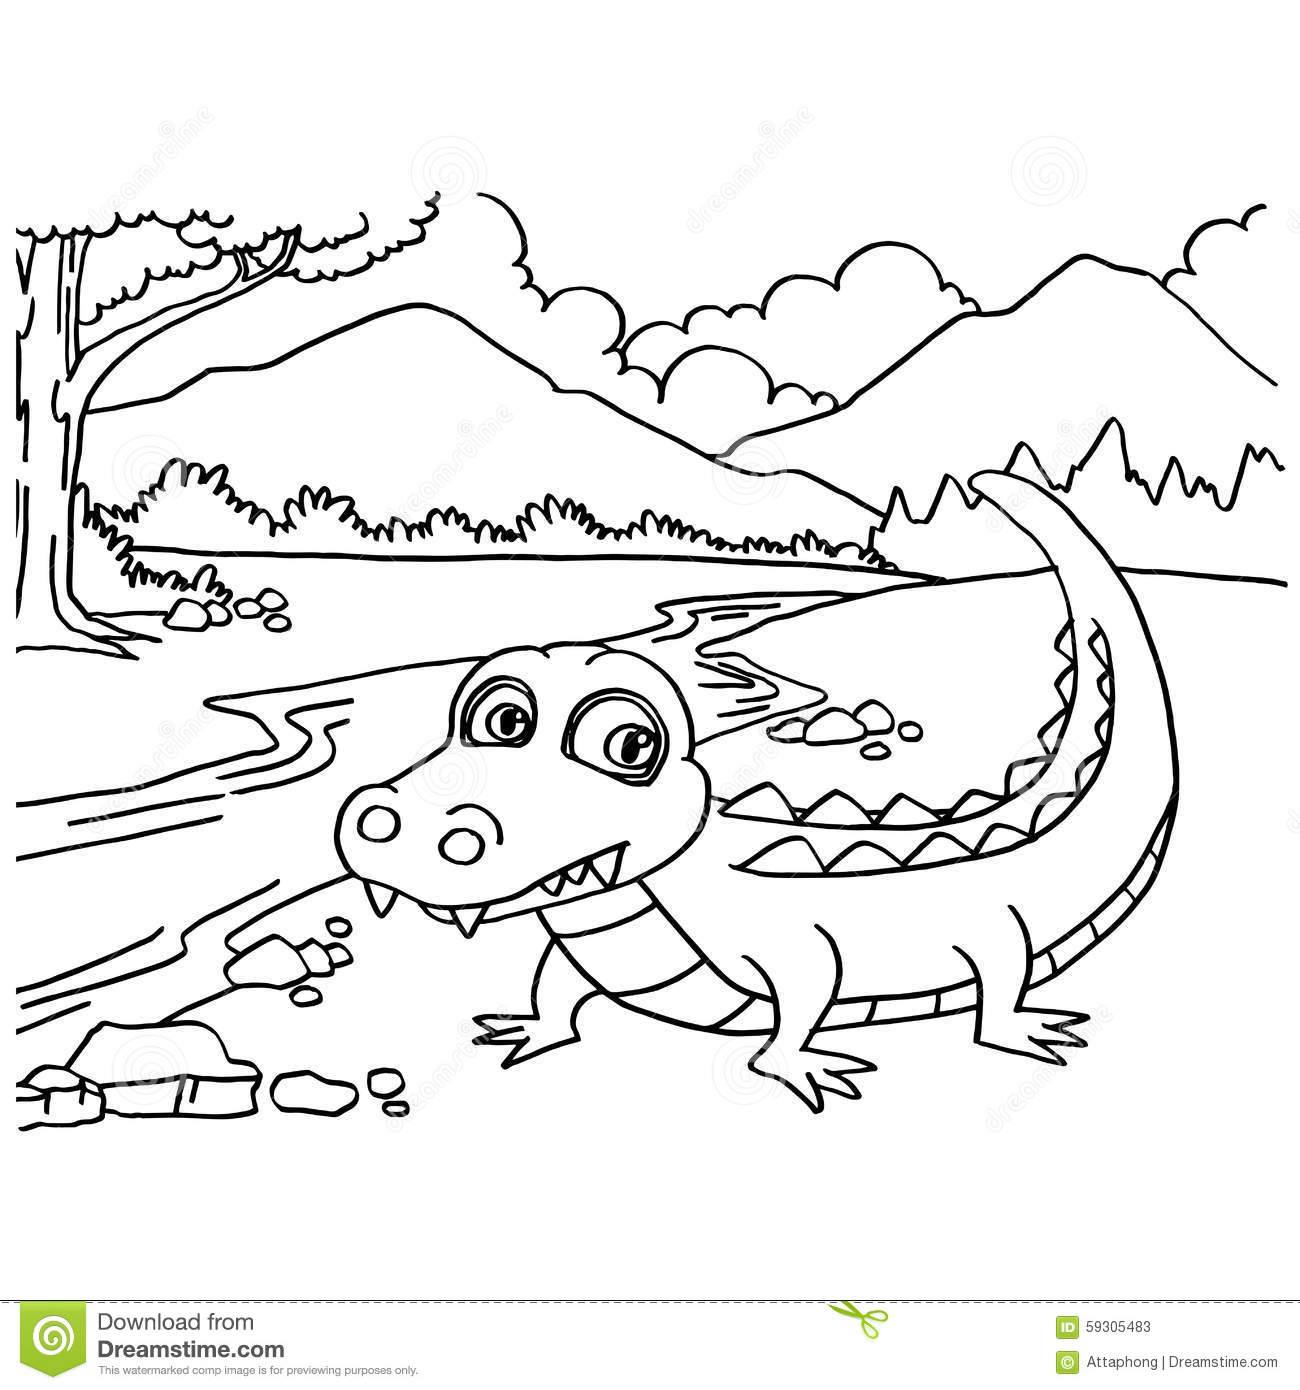 Crocodile Showing Teeth Coloring Pages